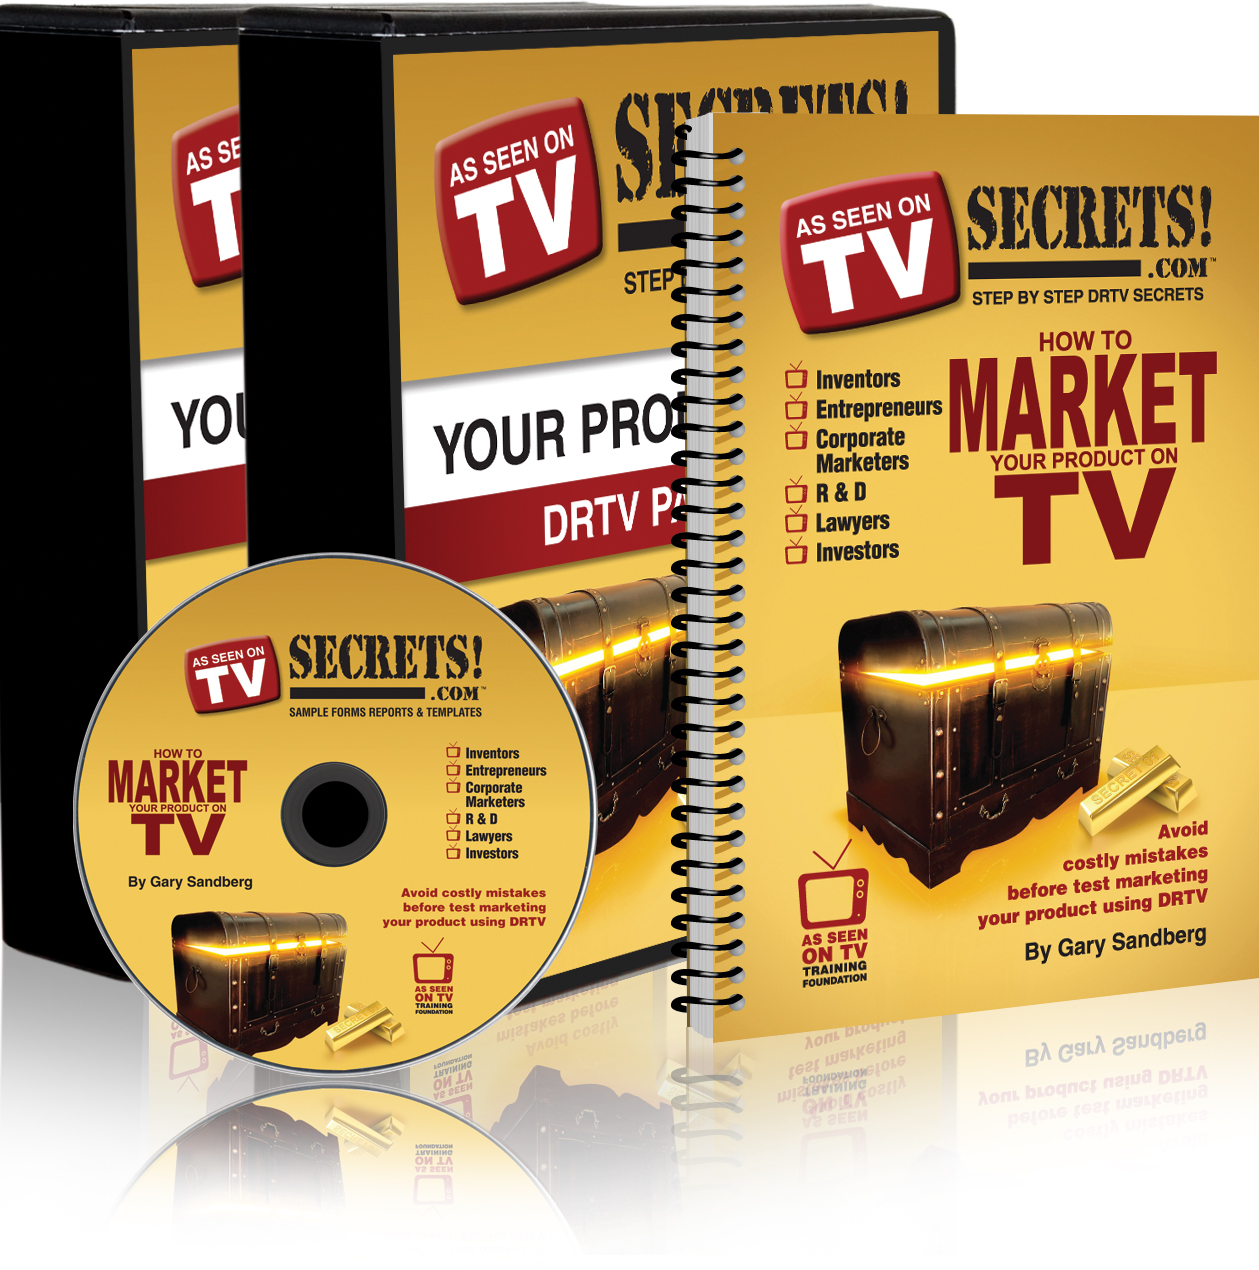 tv seen latest marketing secrets february